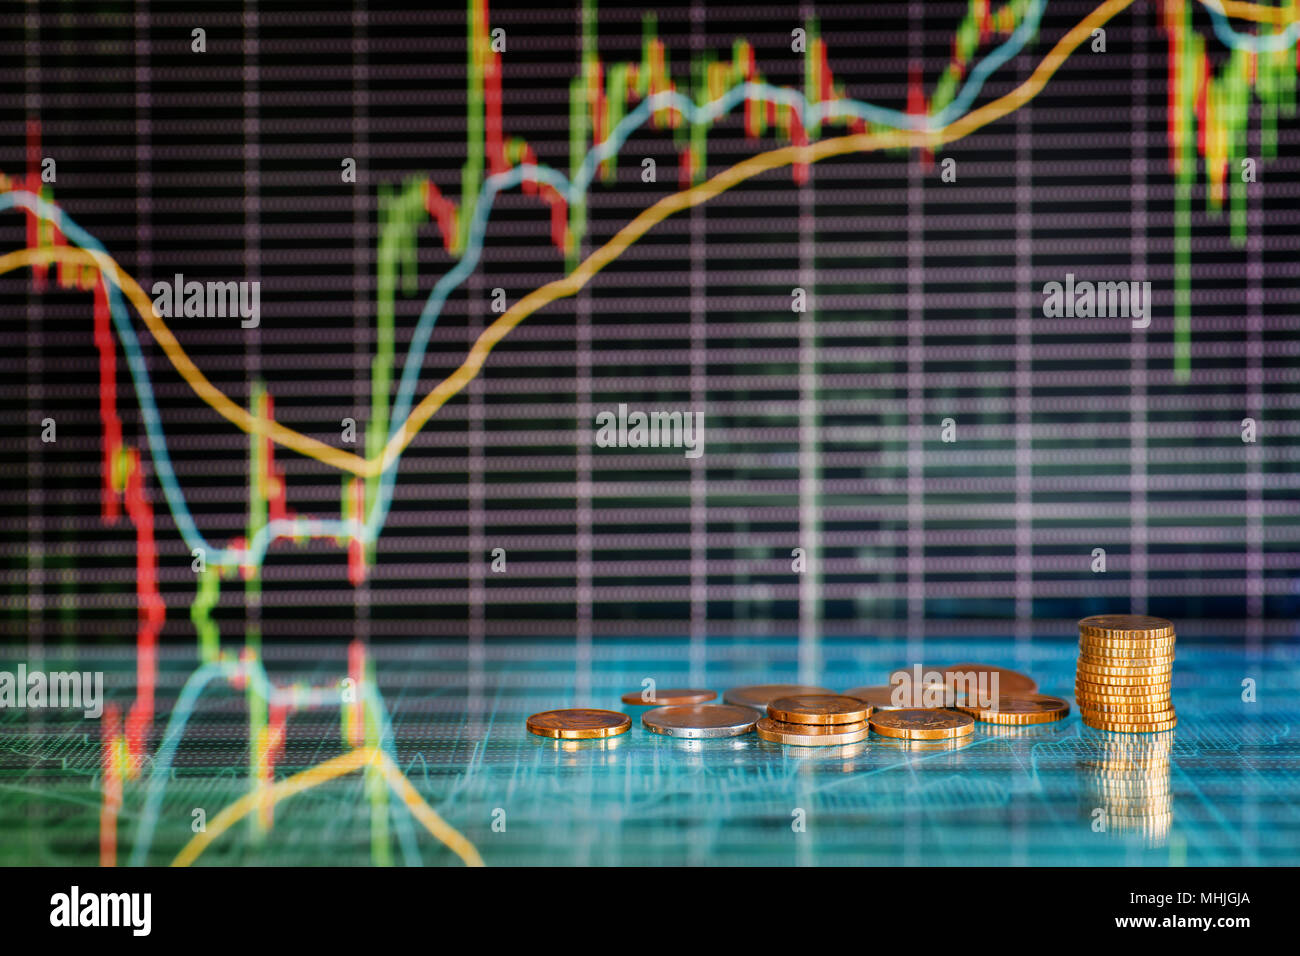 Money and stock market graphs. Coins against futuristic display with candles diagrams - Stock Image